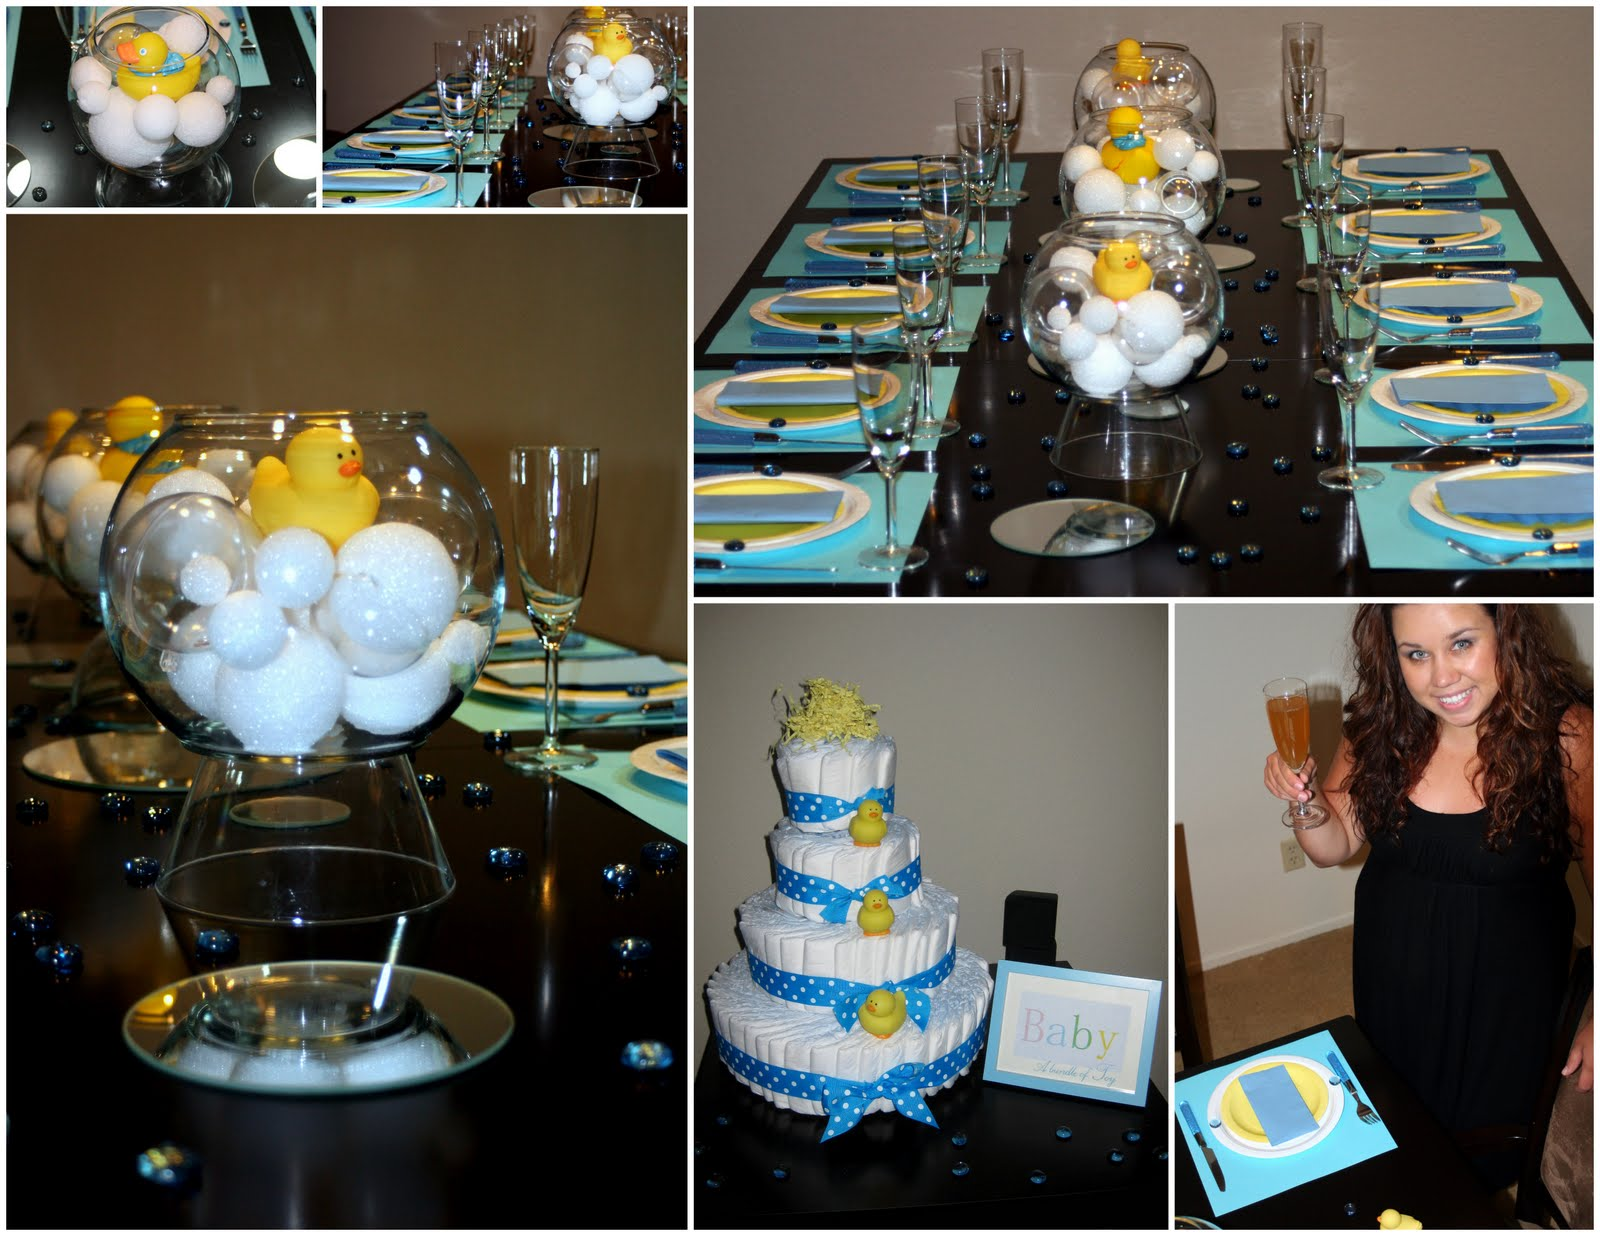 Rubber Ducky Baby Shower Decorations - Baby Shower Decoration Ideas